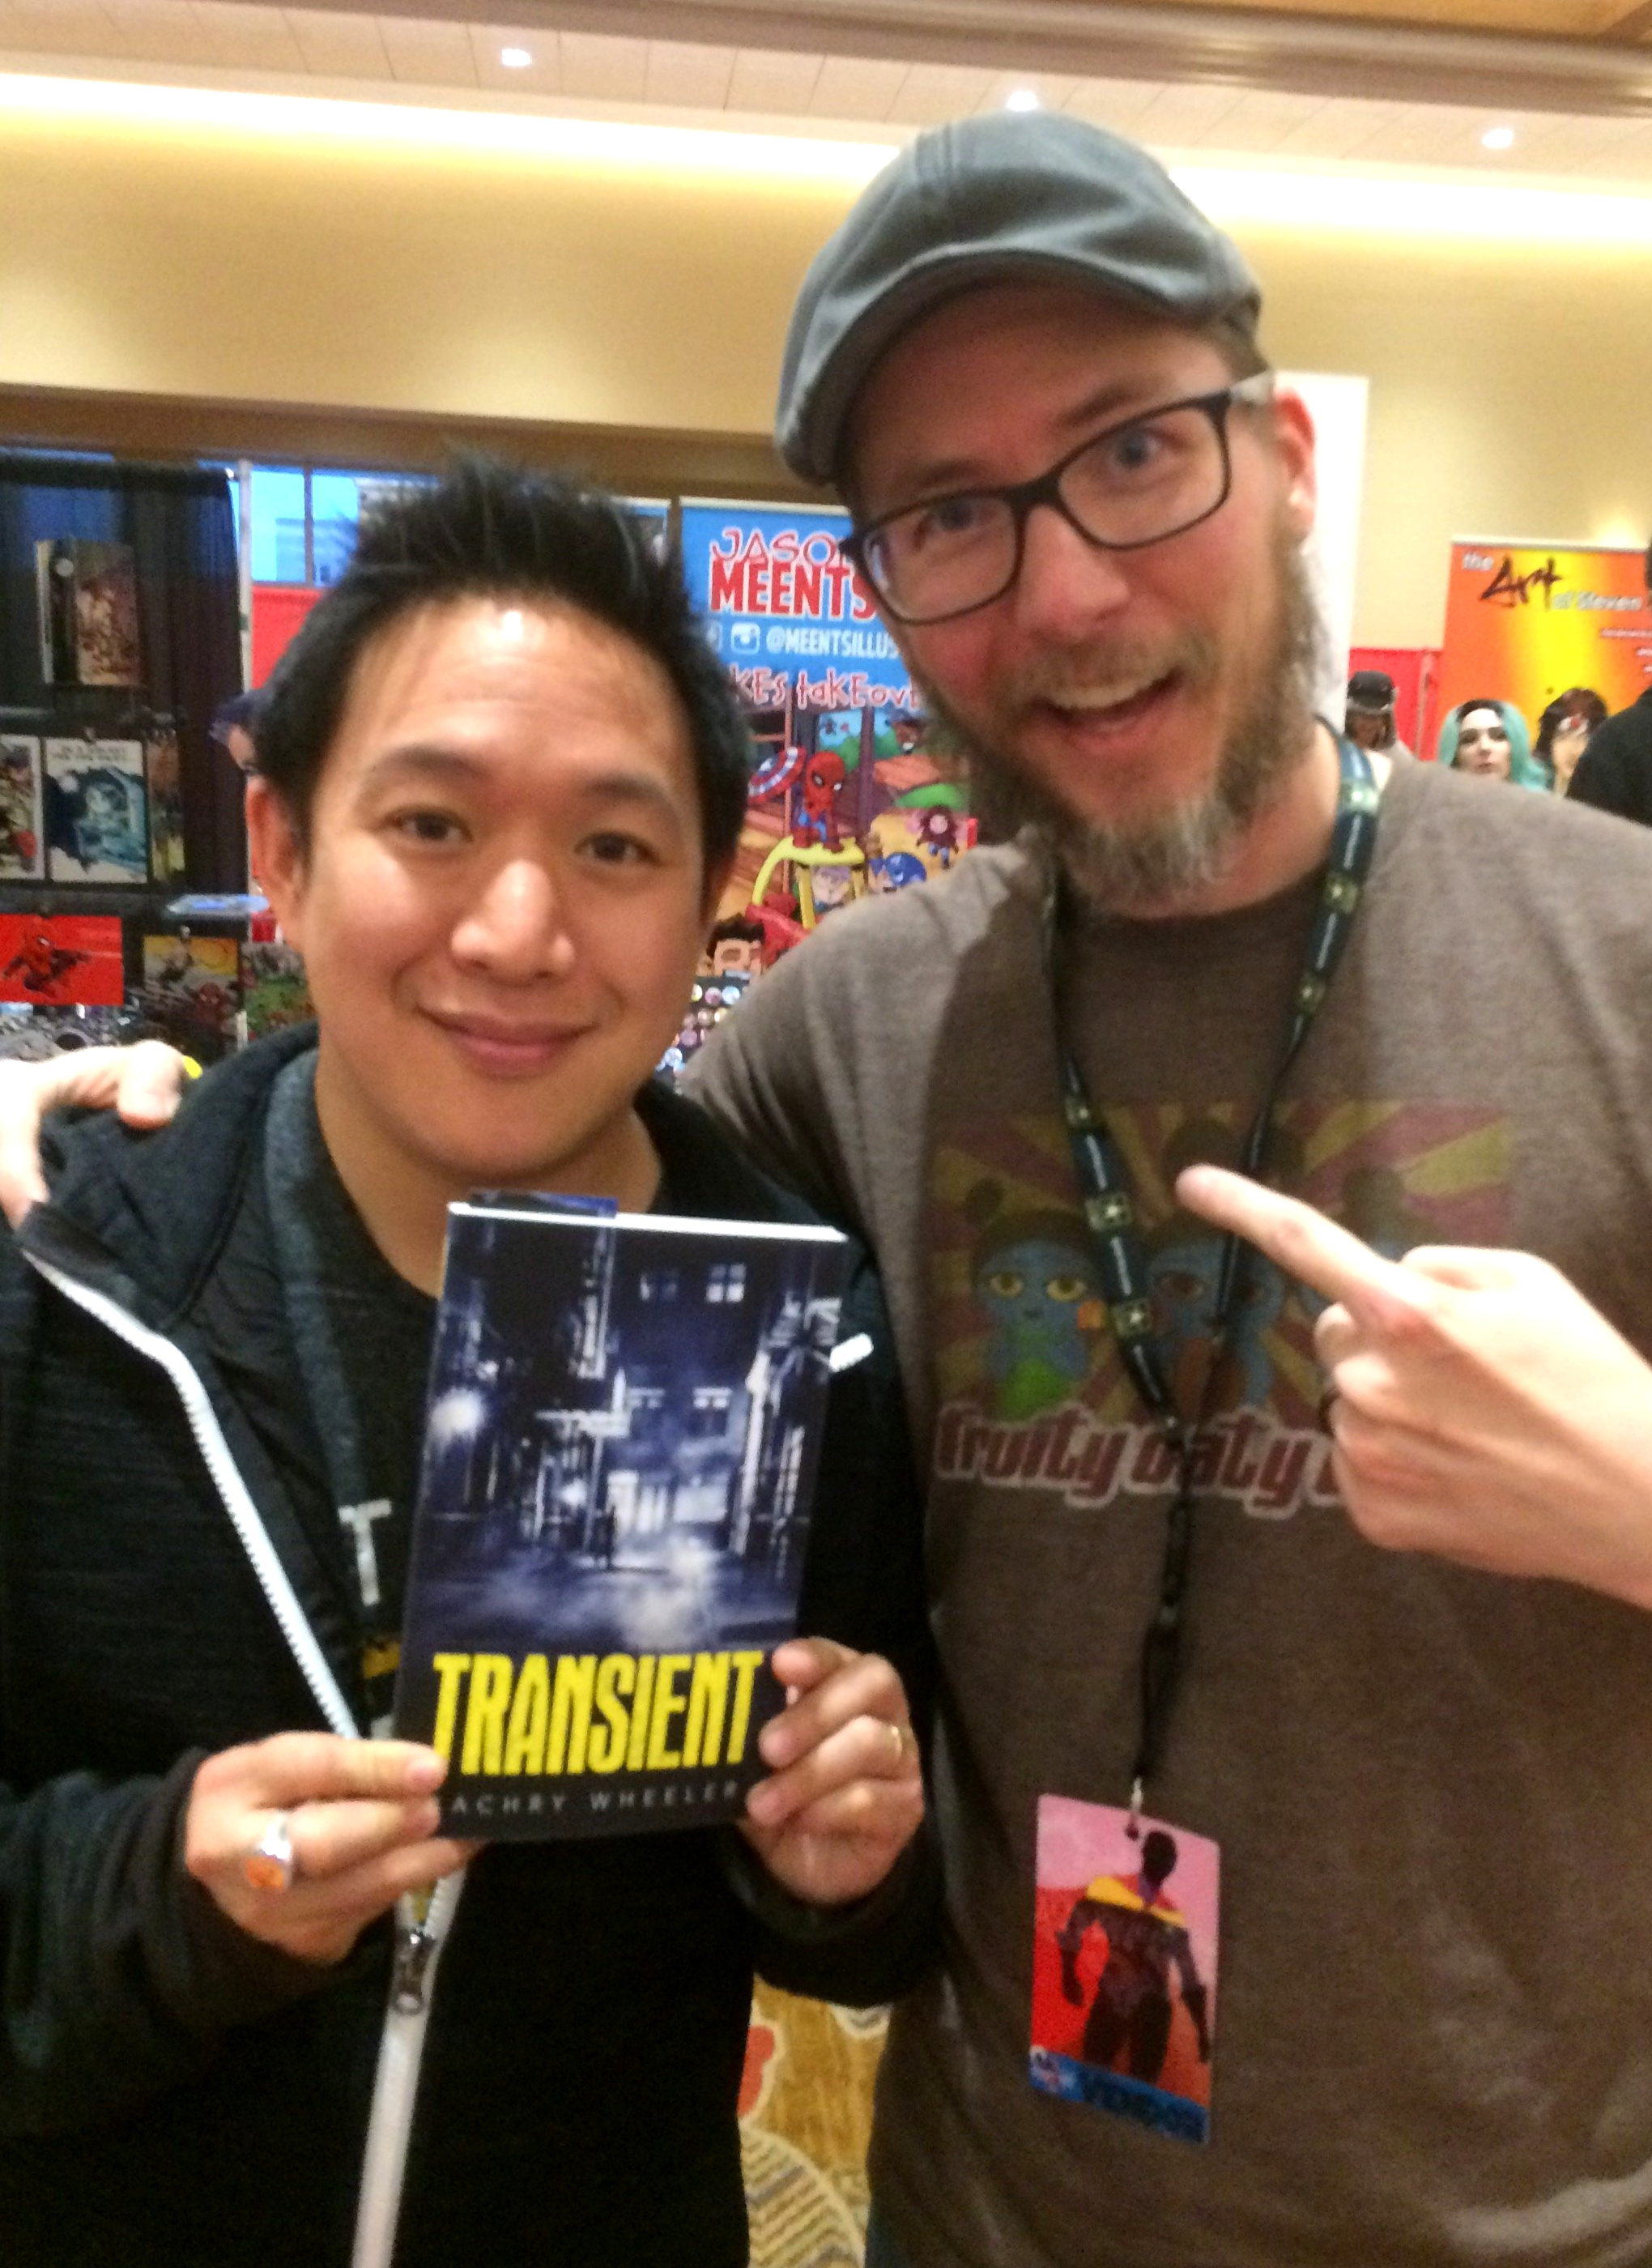 Ming Chen of AMC's Comic Book Men with his copy of Transient